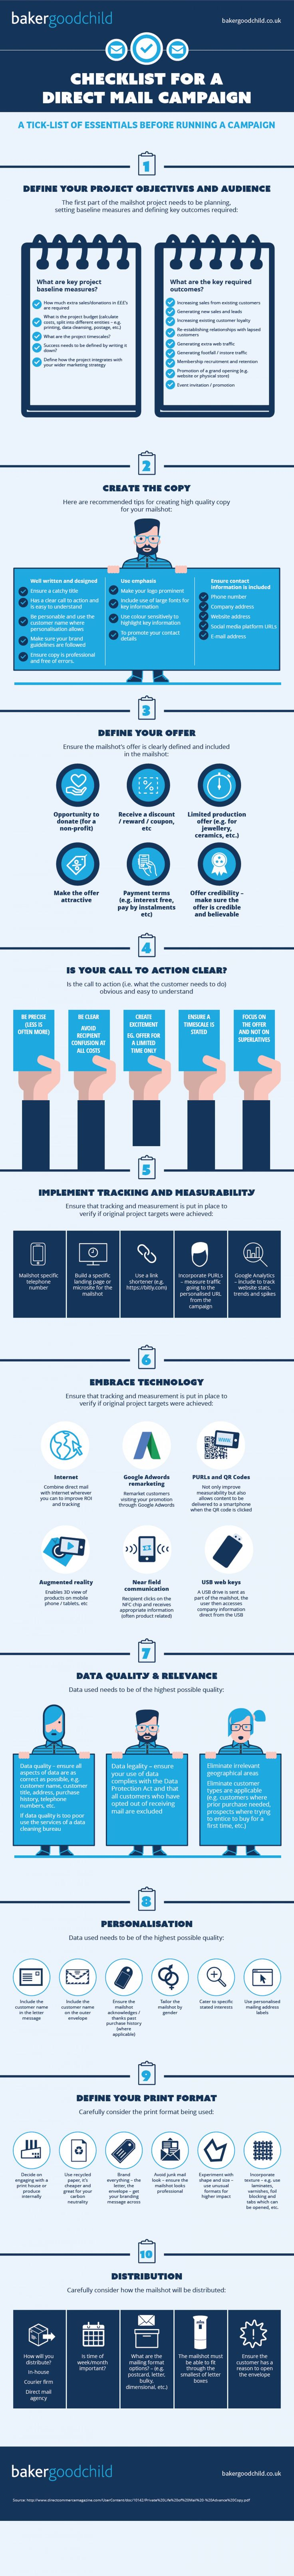 Checklist for a direct mail campaign Infographic                                                                                                                                                                                 More